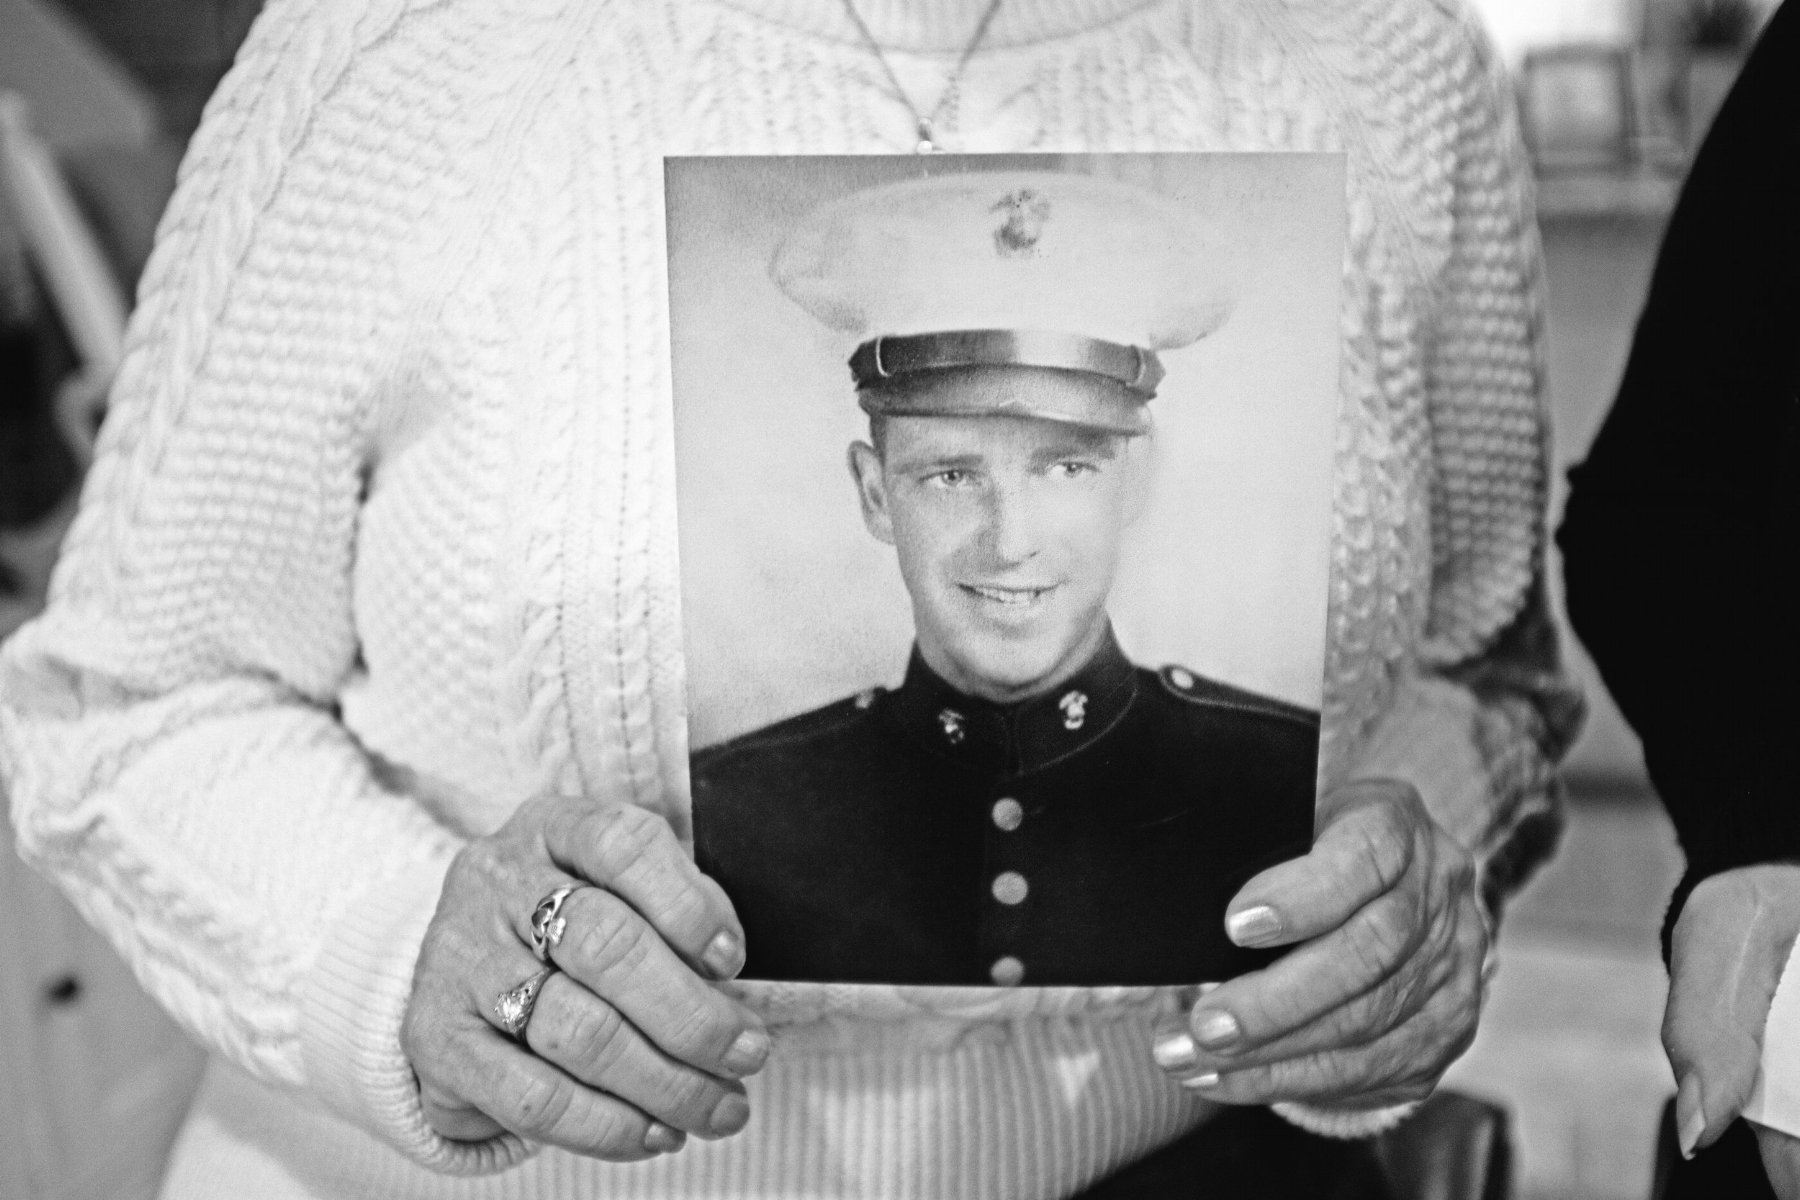 Judi Greely holds a photo of her father, Ralph, who died in World War II. (Photograph by Thi Linh Wernau)